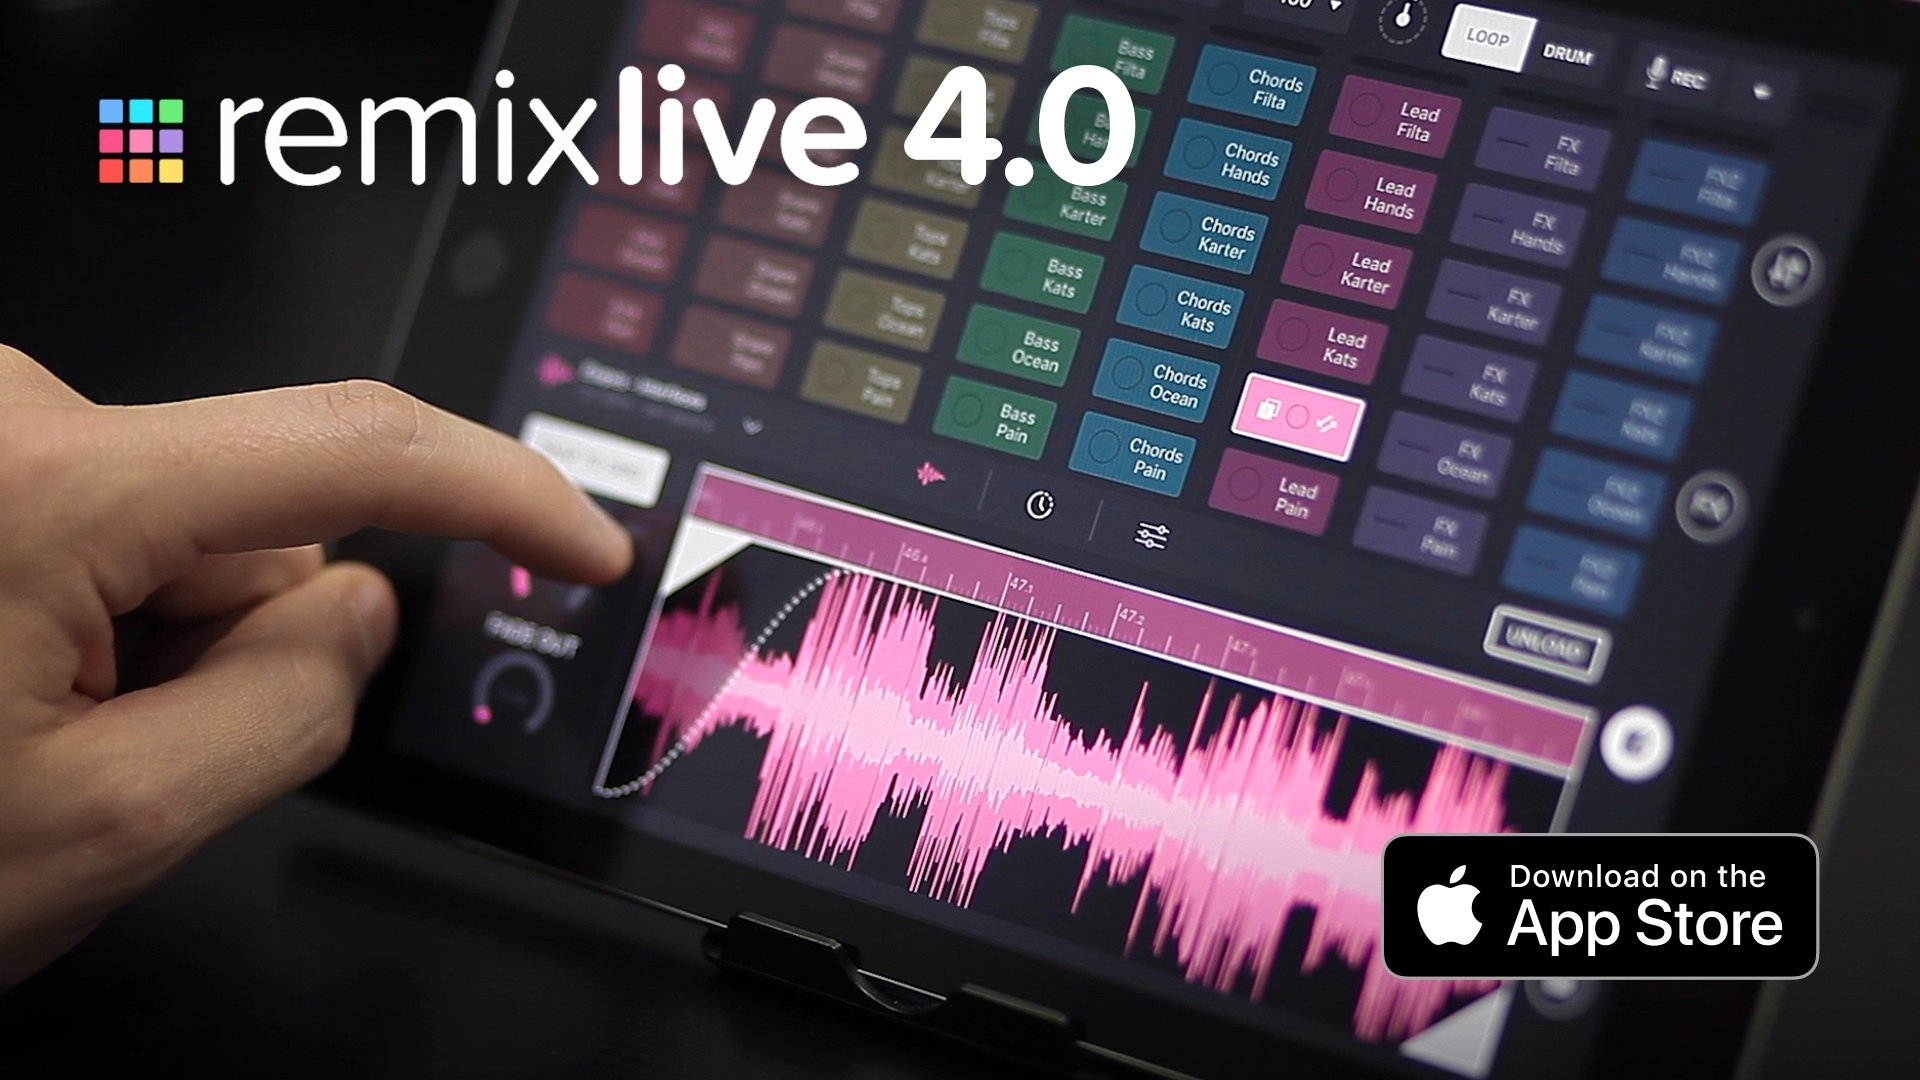 Mixvibes Remixlive 4 — play samples and edit them too 8